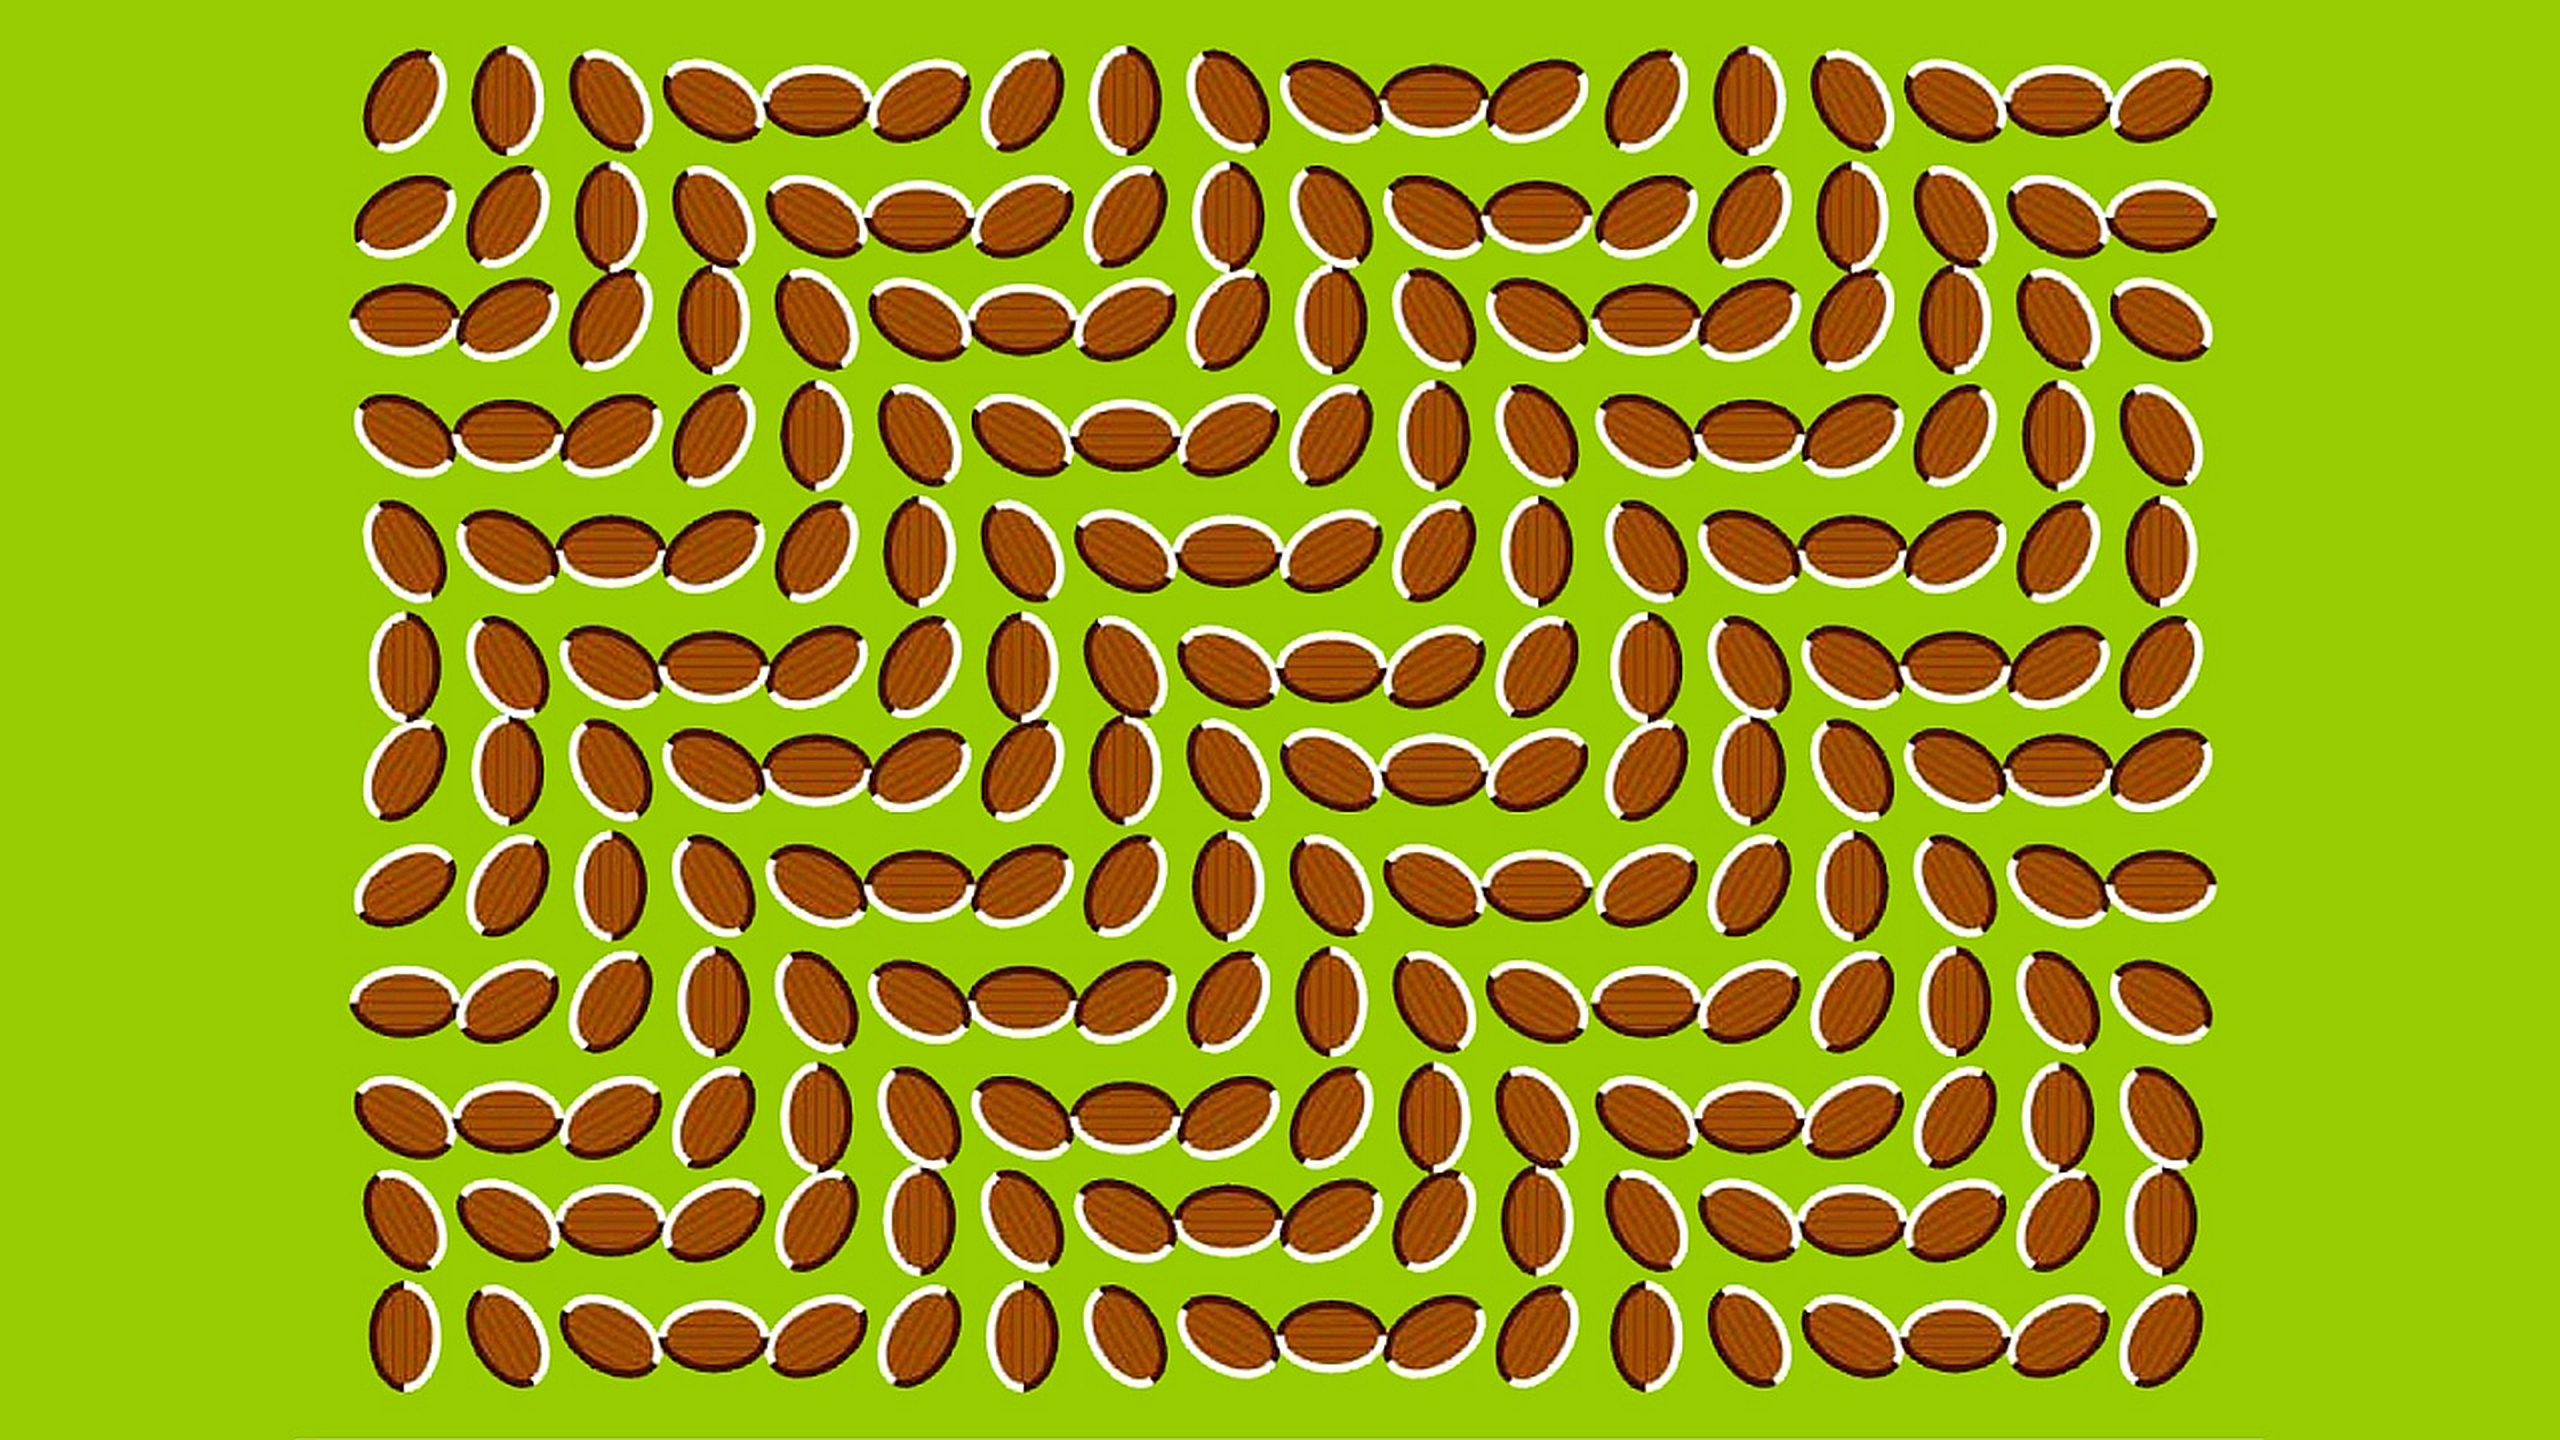 Illusion Wallpaper Iphone X Illusion Full Hd Wallpaper And Background Image